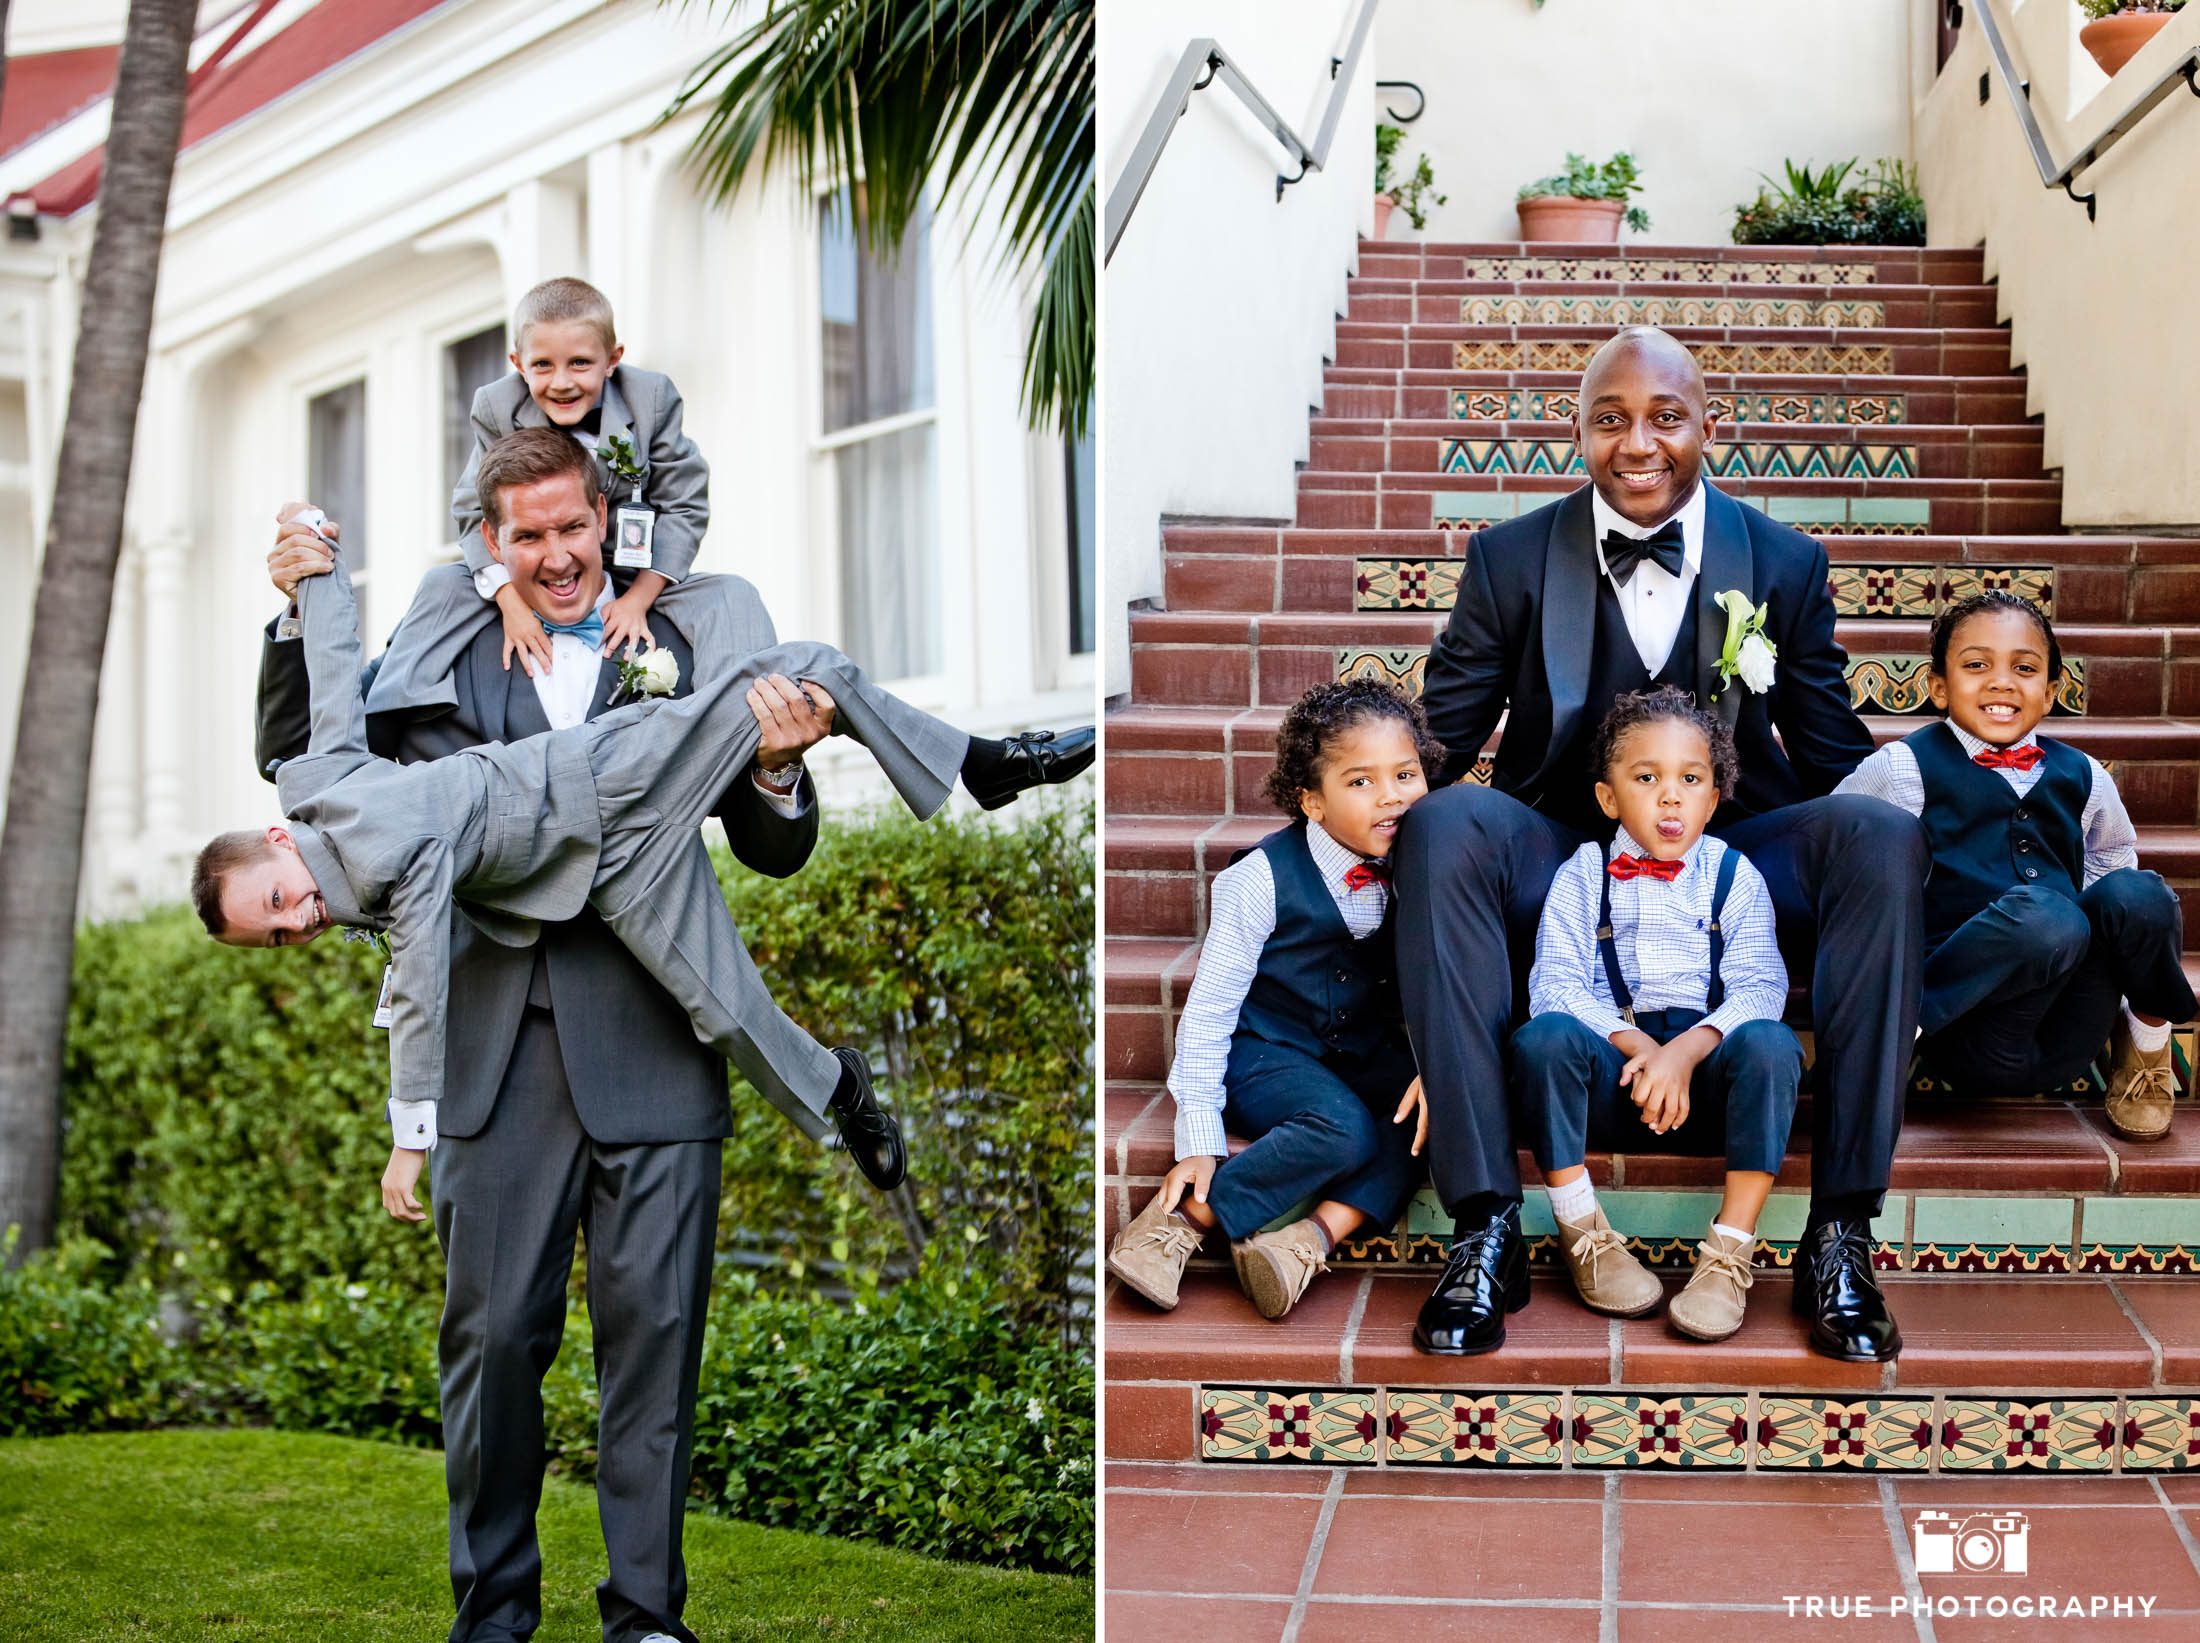 Grooms pose in silly way with young boys at wedding